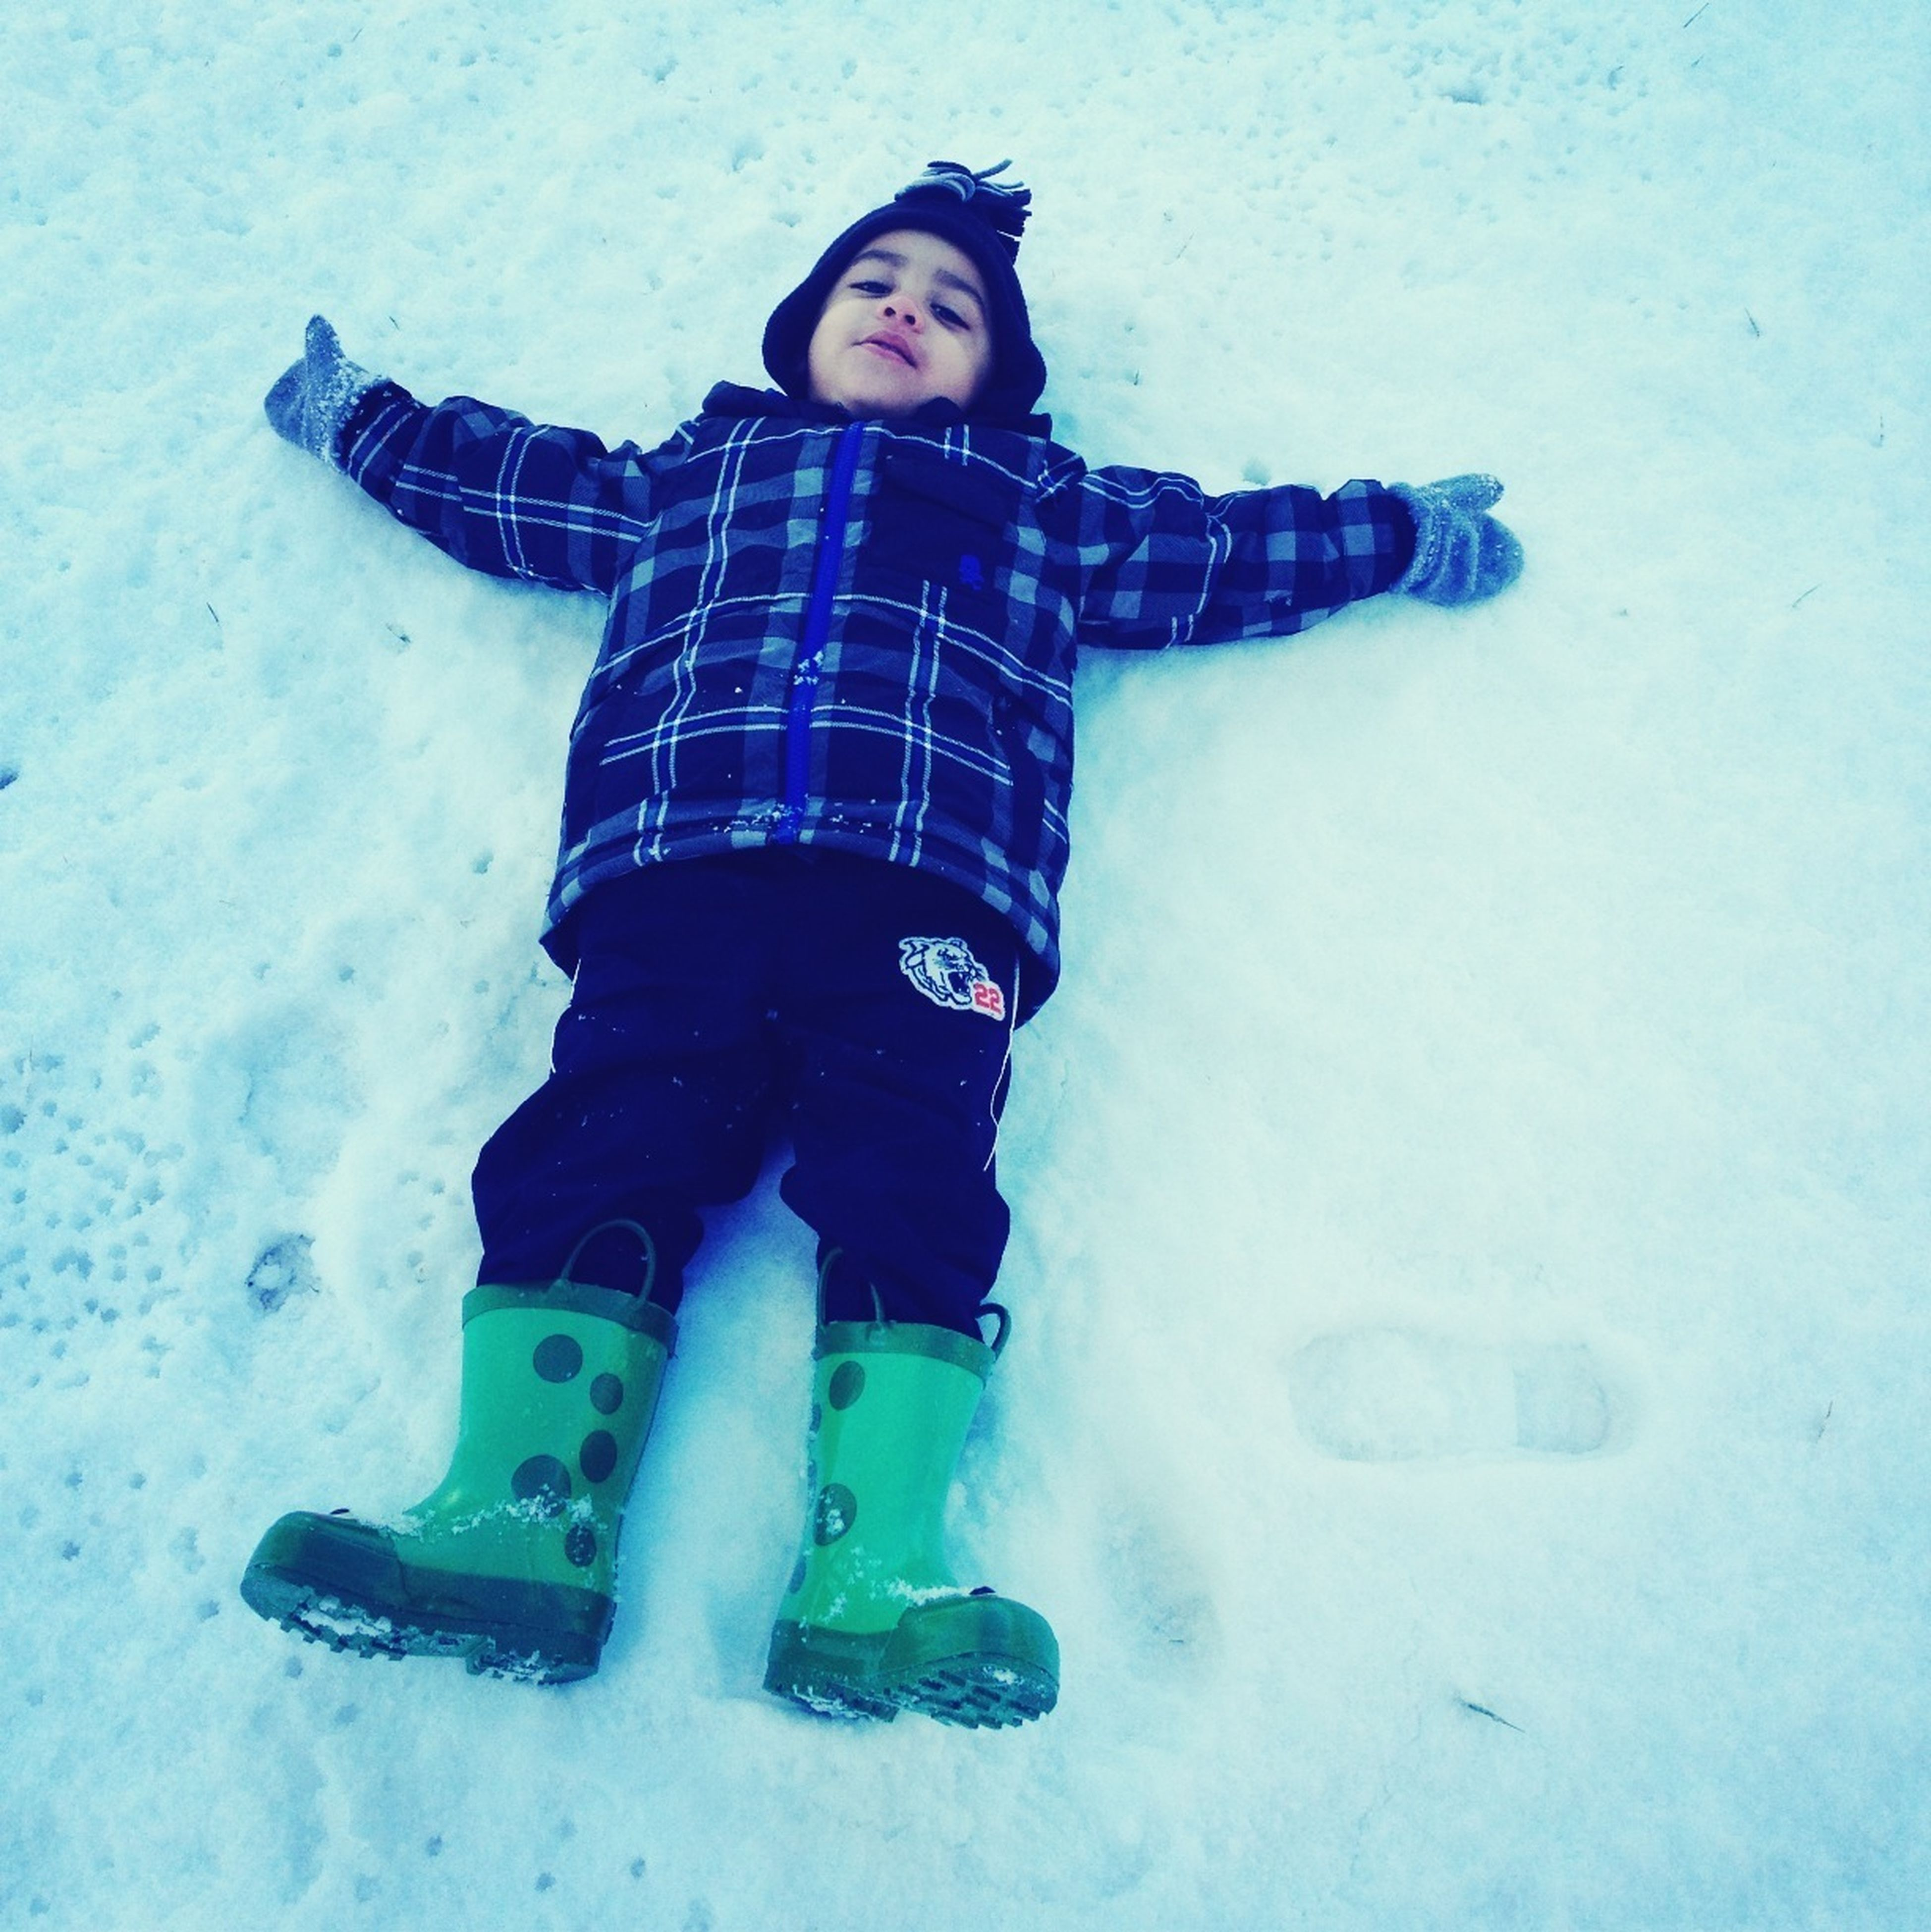 winter, snow, cold temperature, lifestyles, leisure activity, season, full length, warm clothing, person, weather, standing, casual clothing, high angle view, front view, childhood, looking at camera, portrait, covering